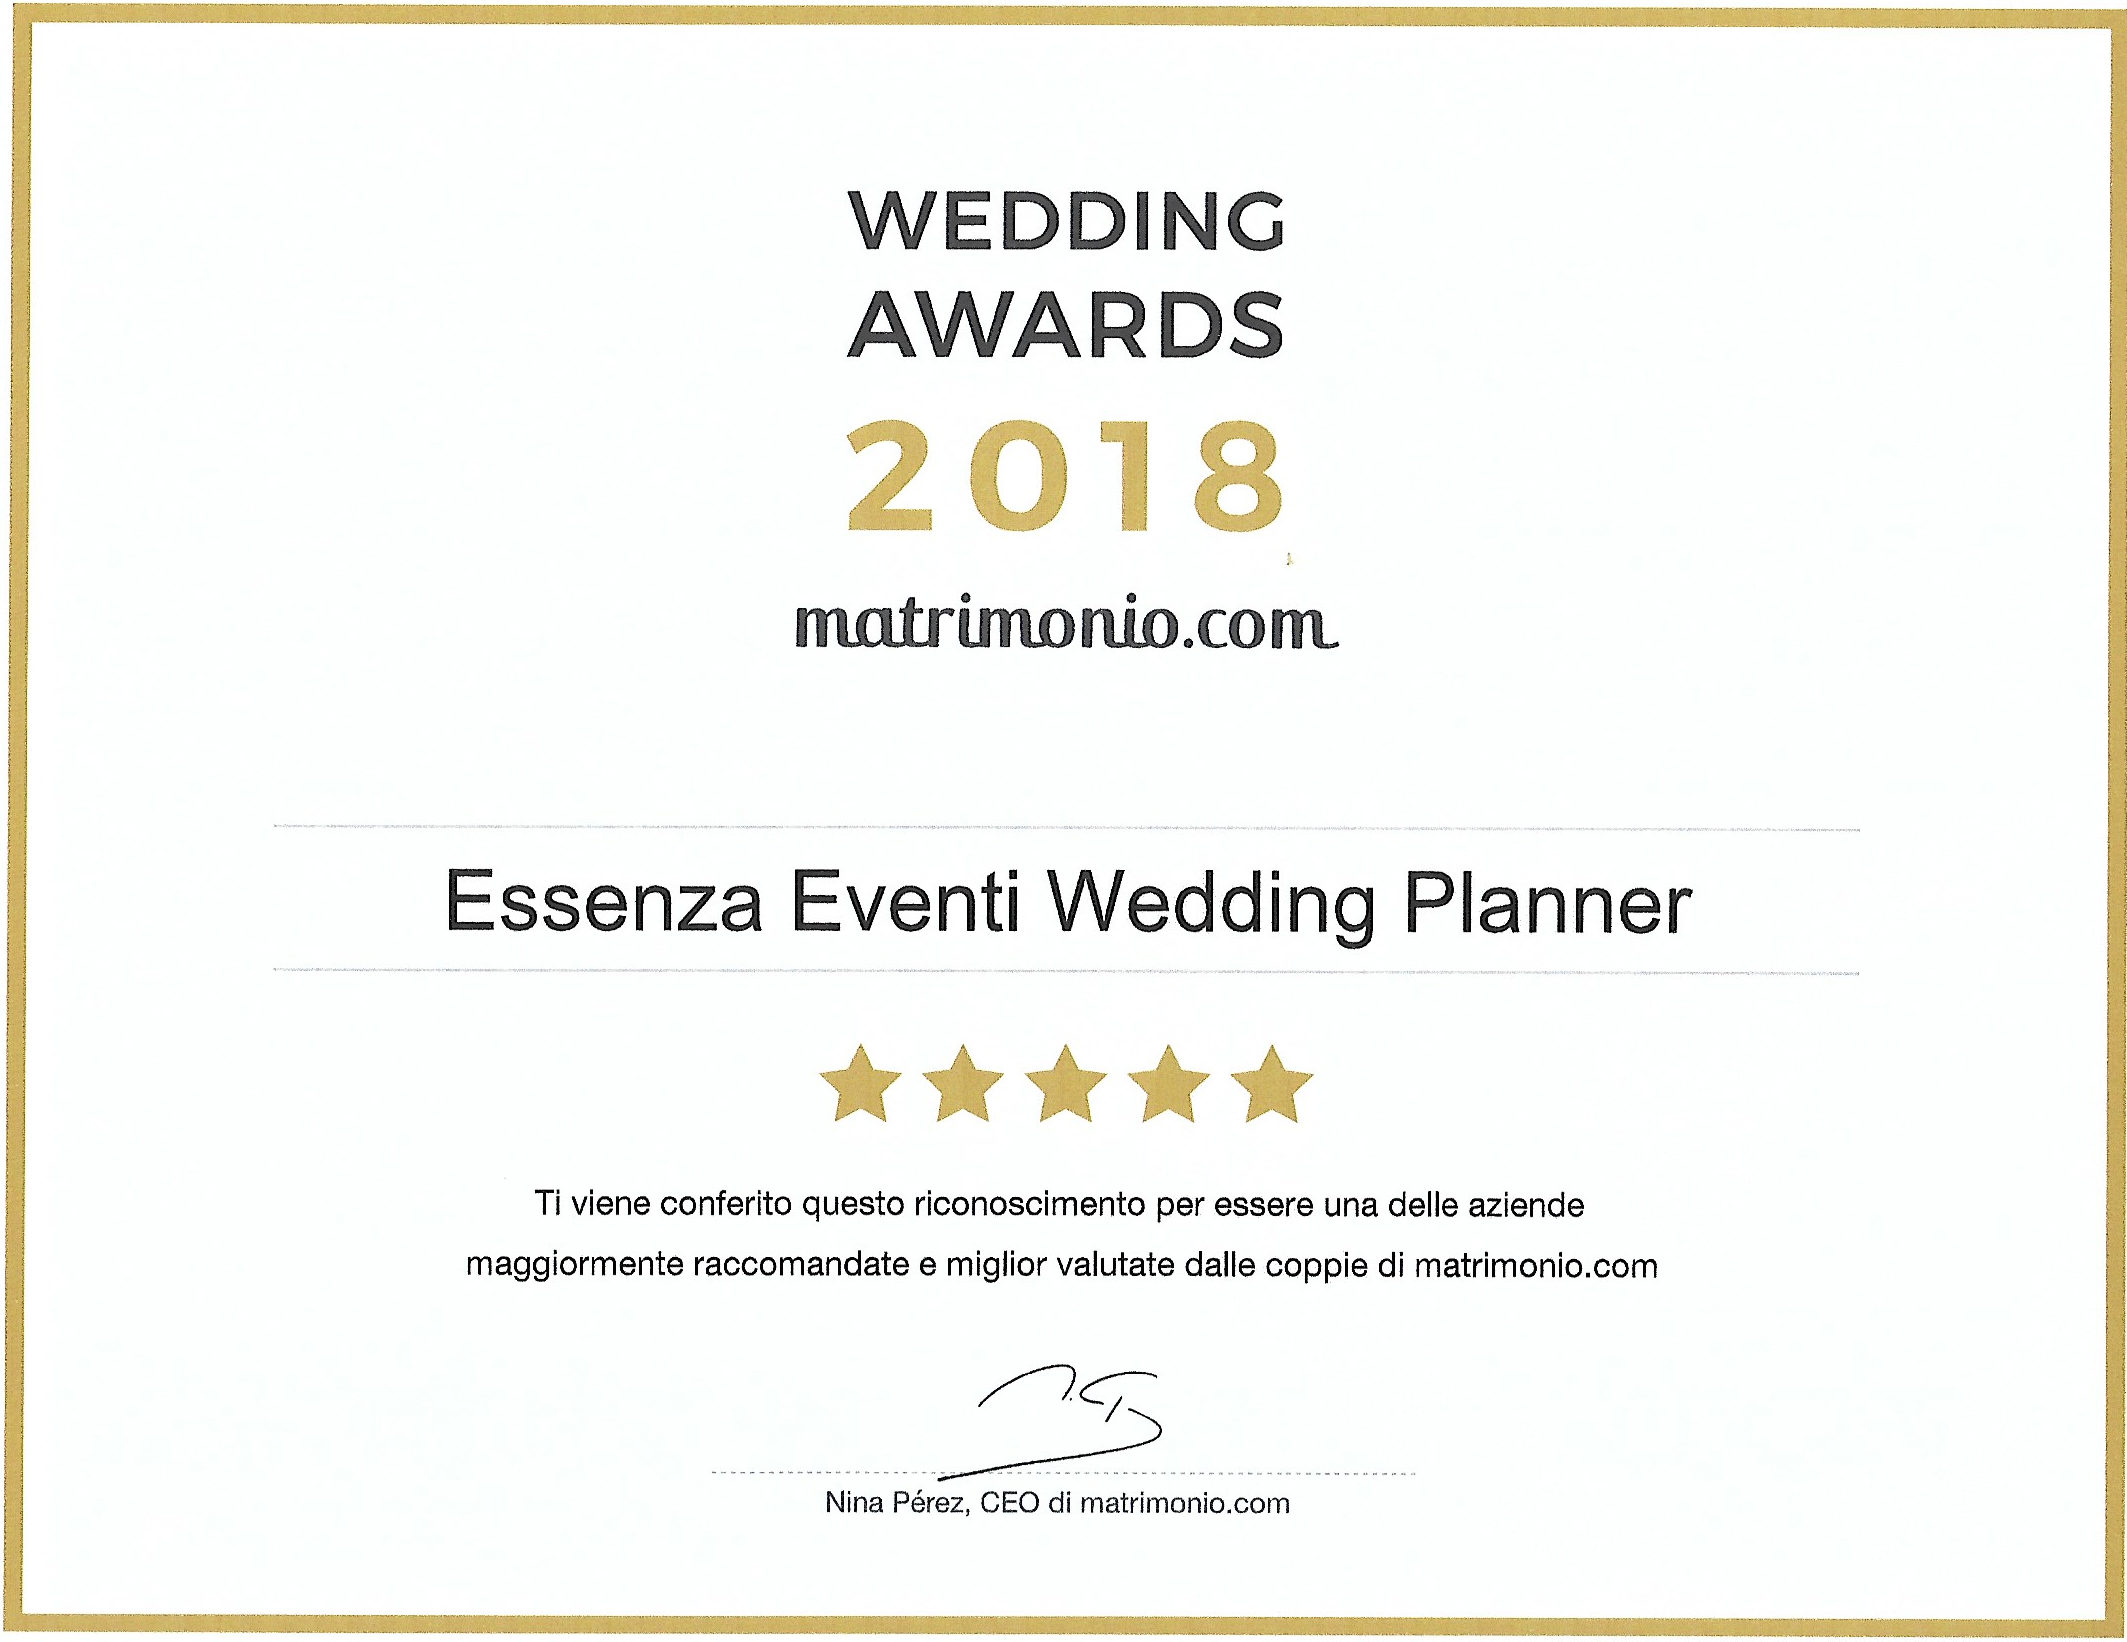 Matrimonio.com – Wedding Award 2018 Wedding Planner